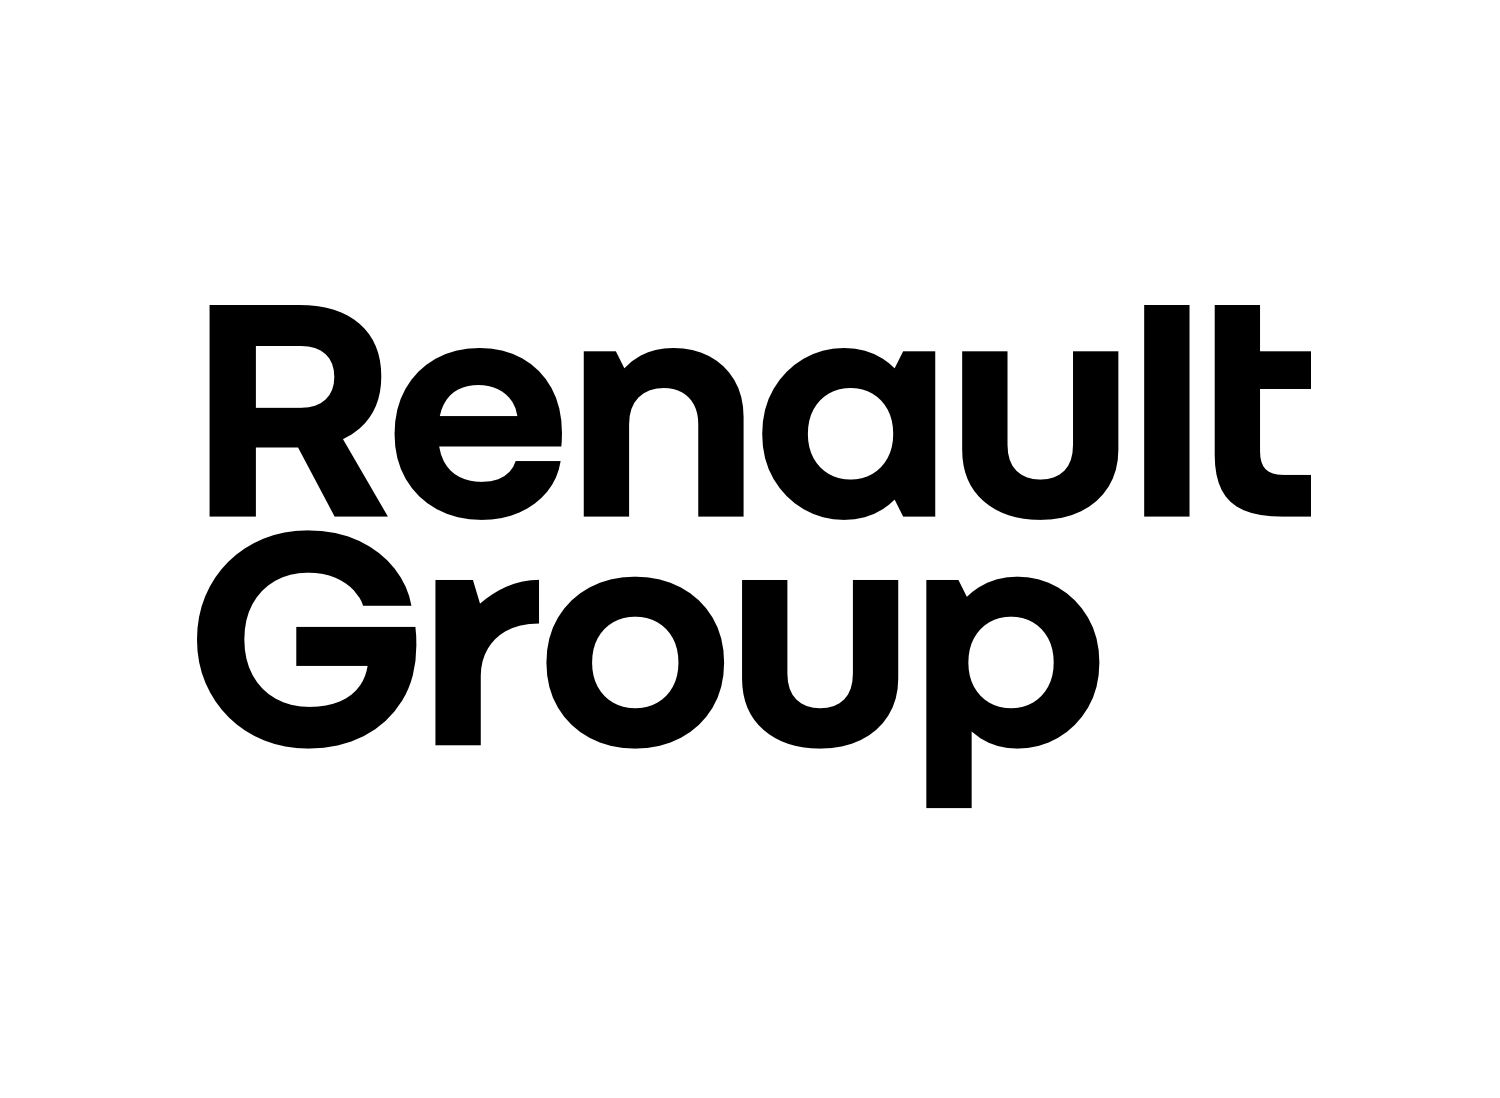 Renault Group Logo